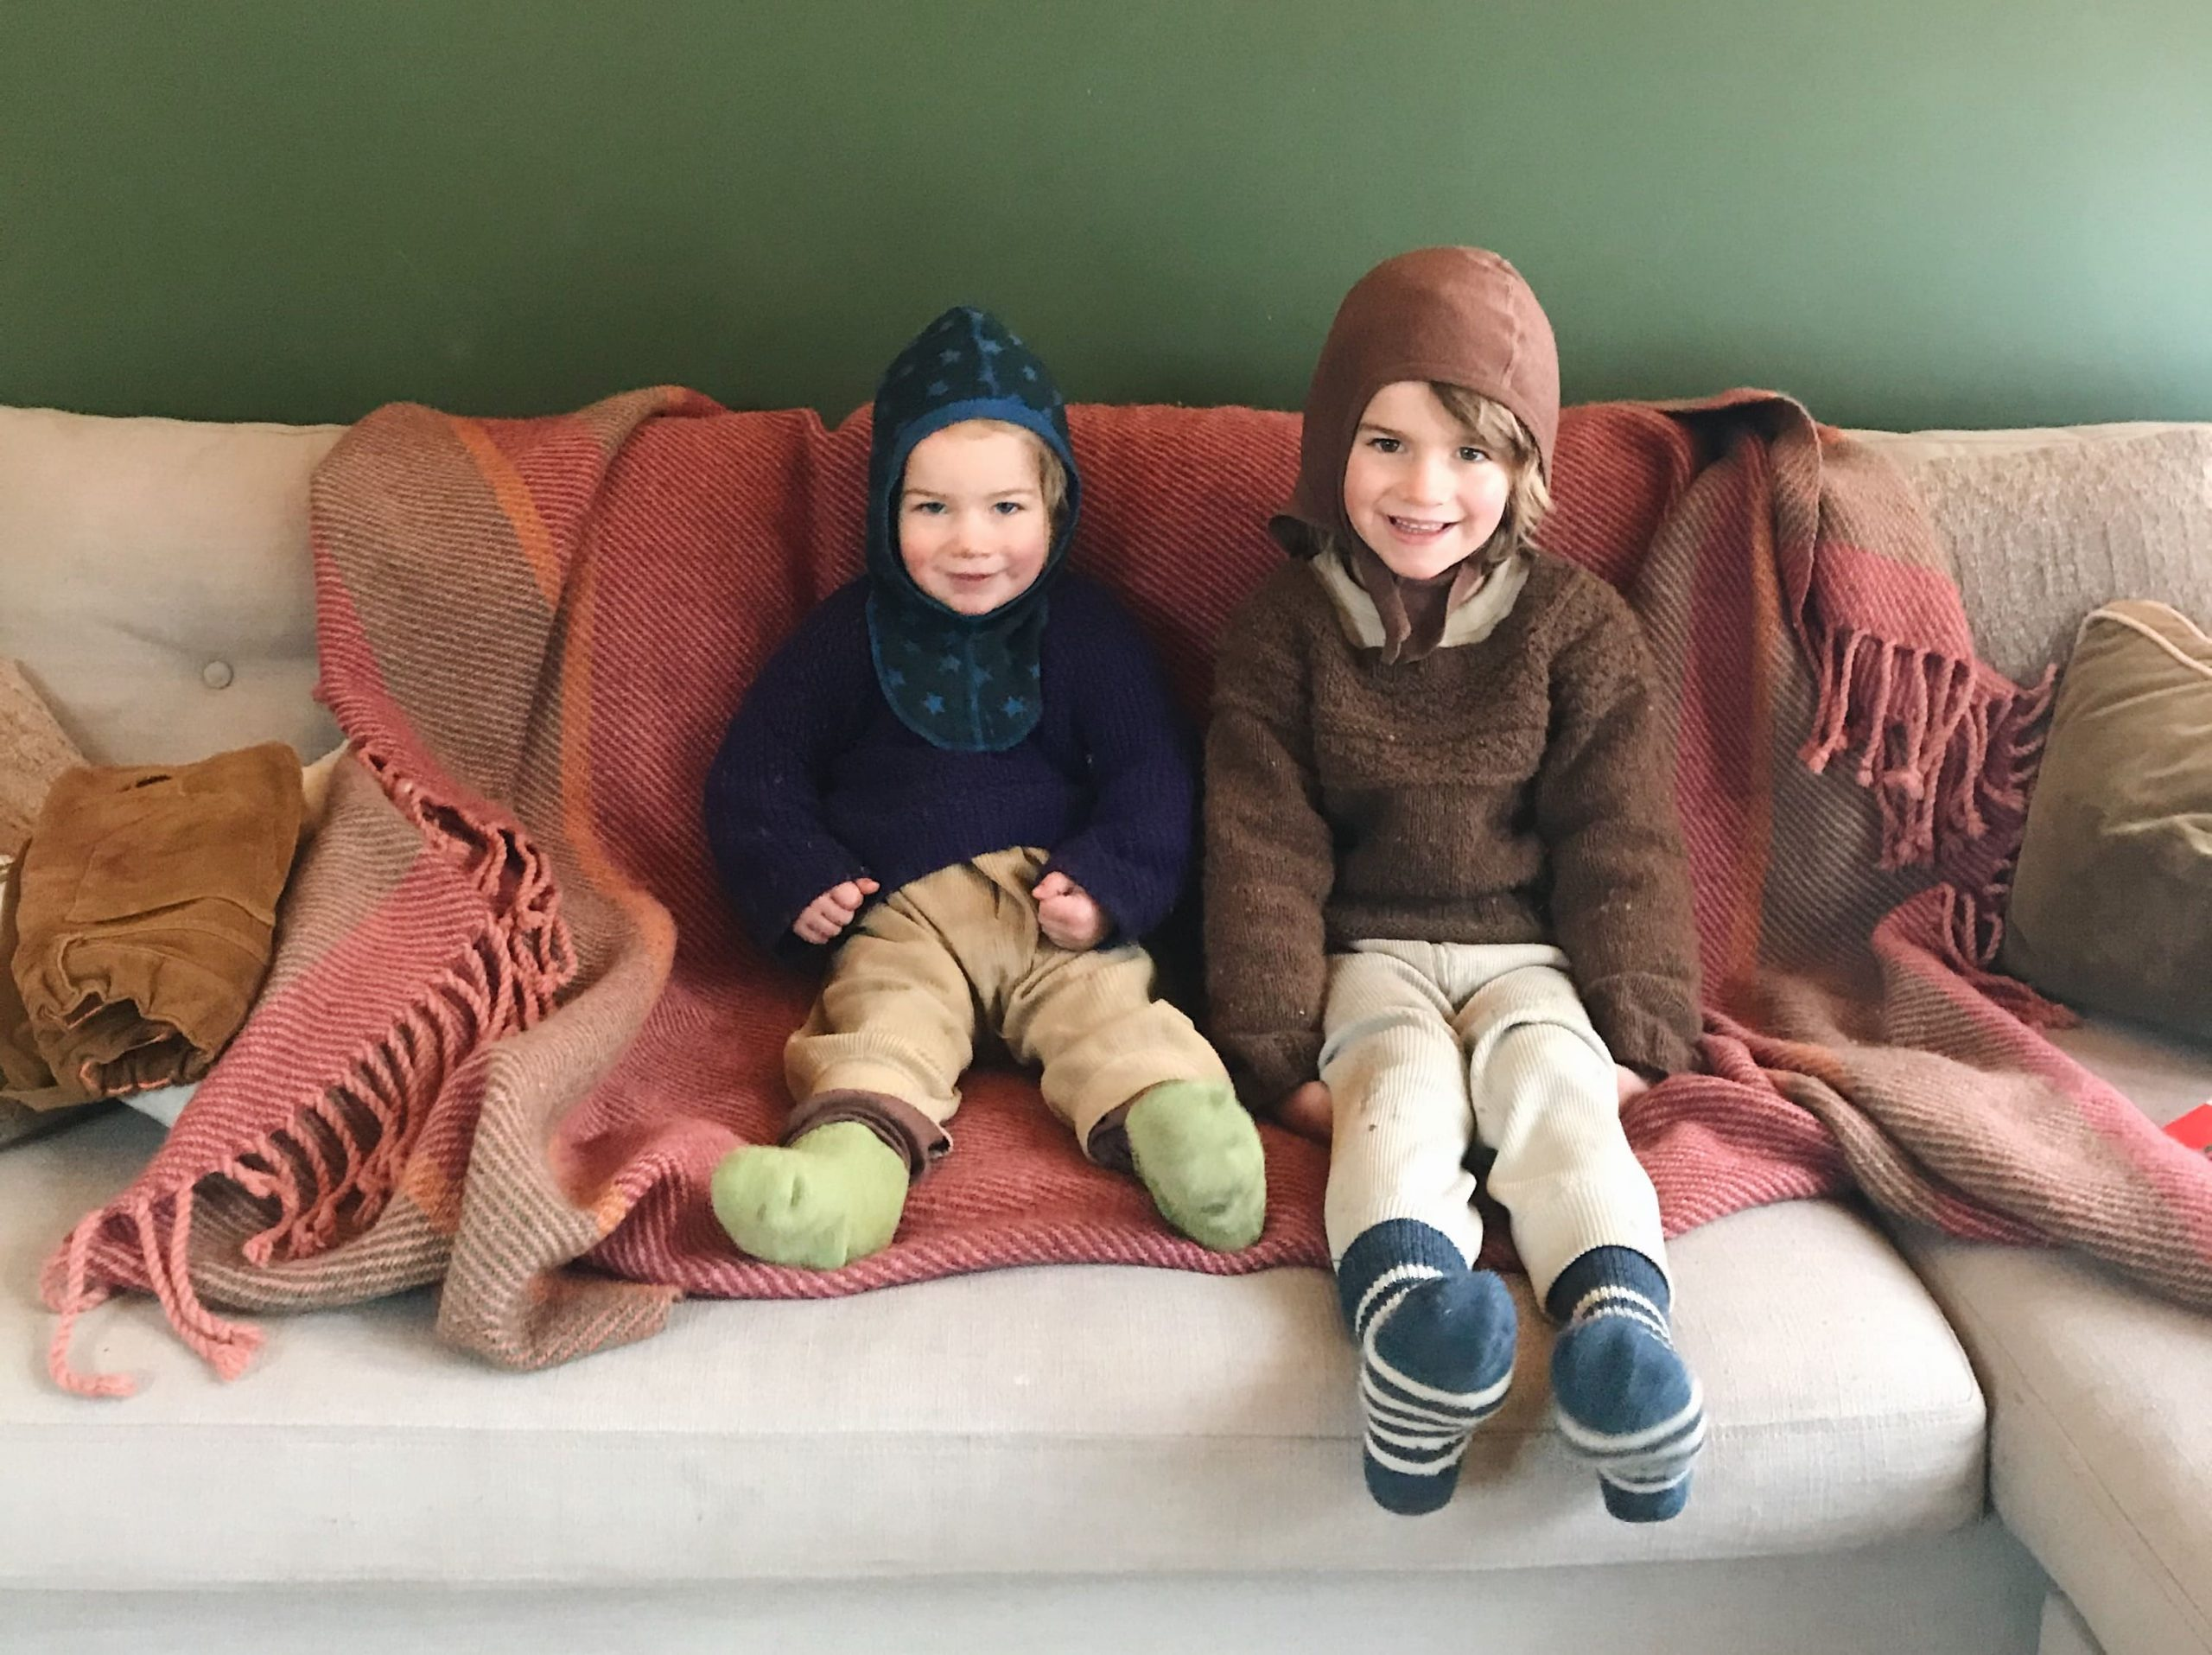 Two boys dressed in wool on couch